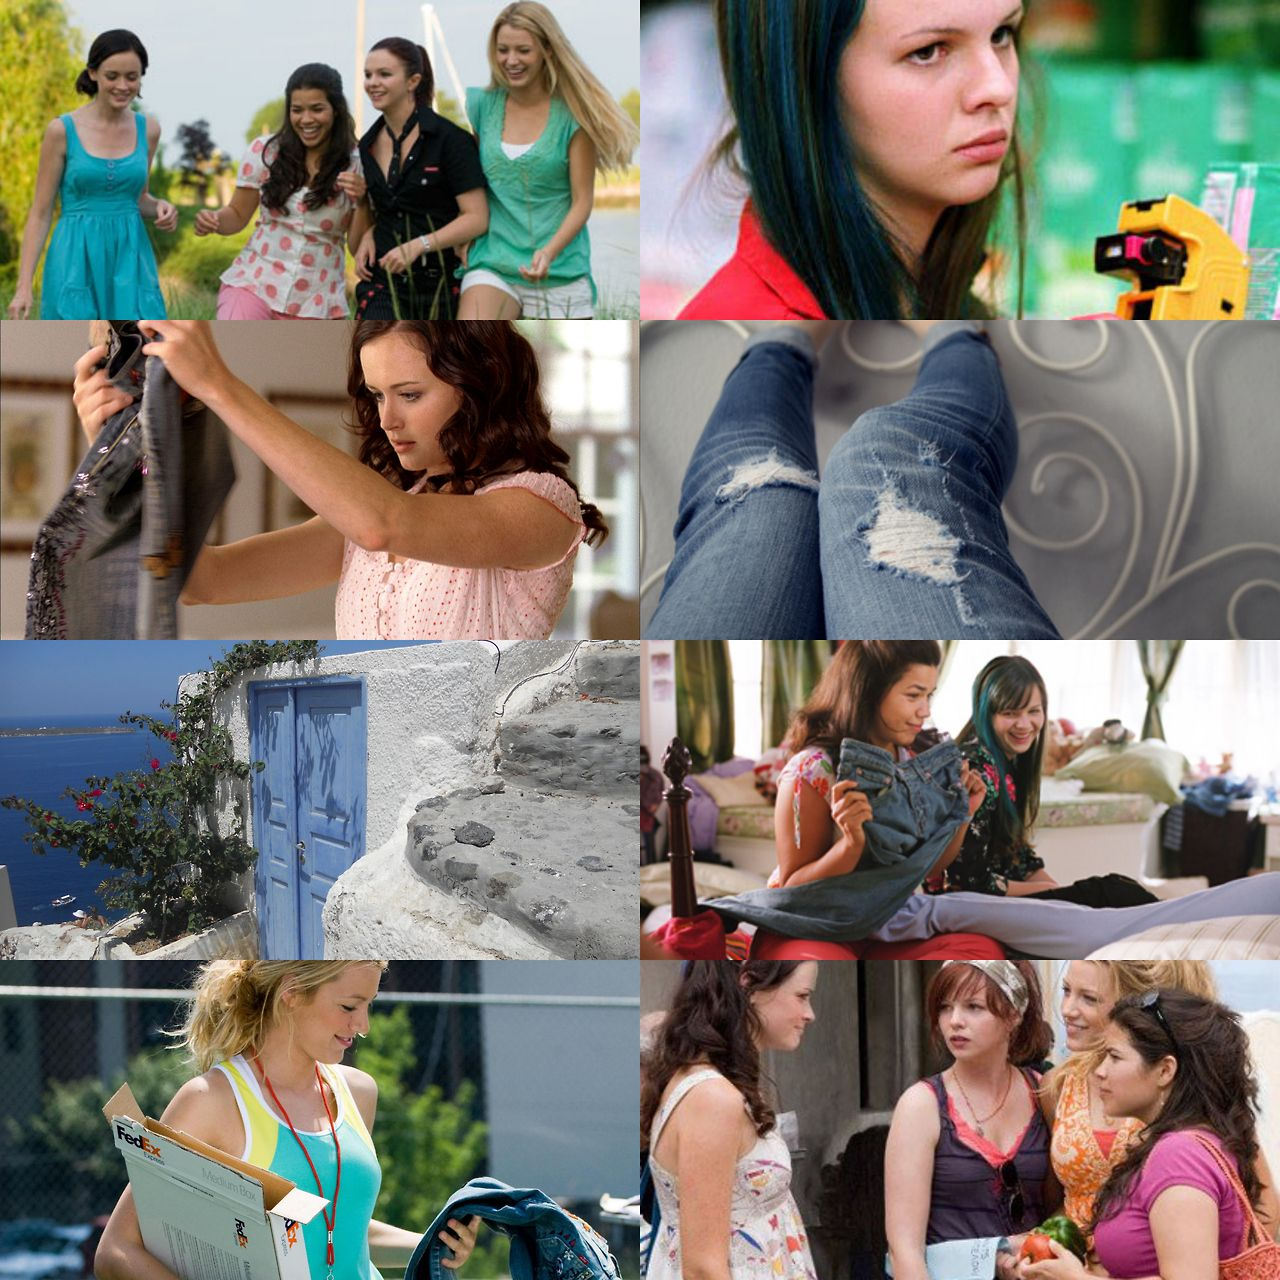 Sisterhood Of The Traveling Pants Quotes About Friendship Barricadeponine Ya Meme 27 Friendships Tibby Lena Carmen